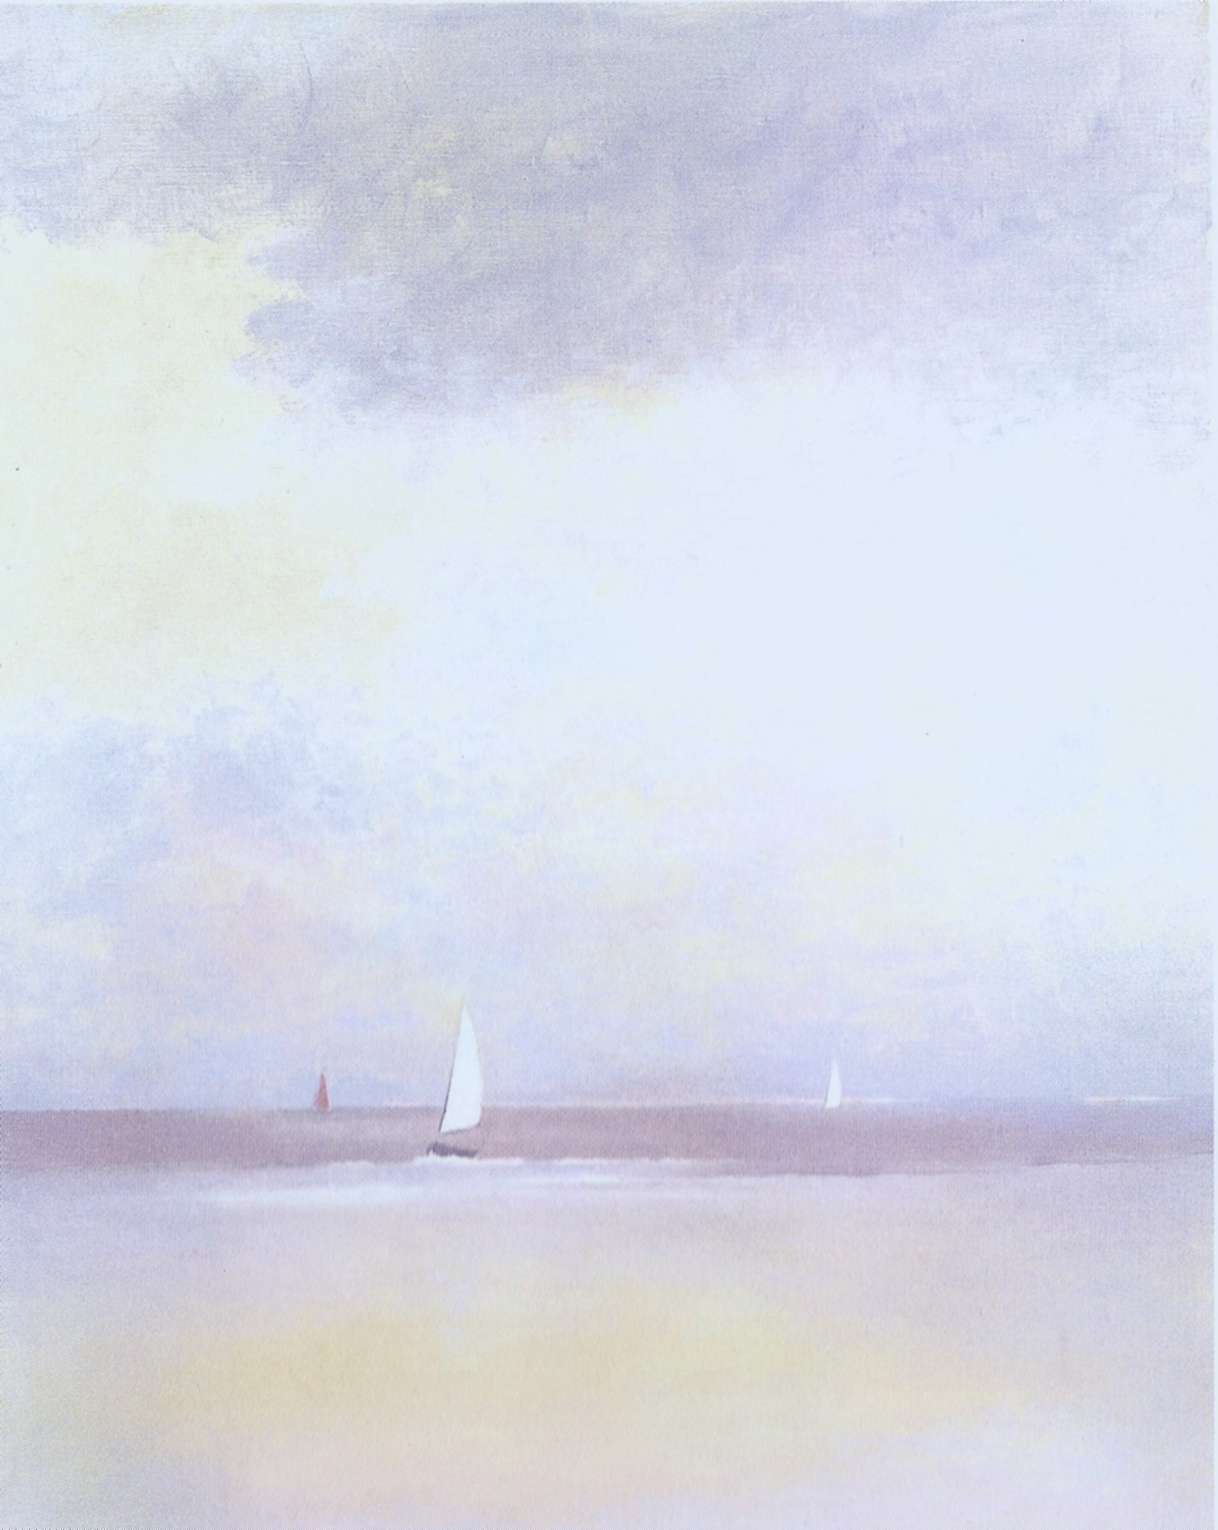 Sailboats on shore